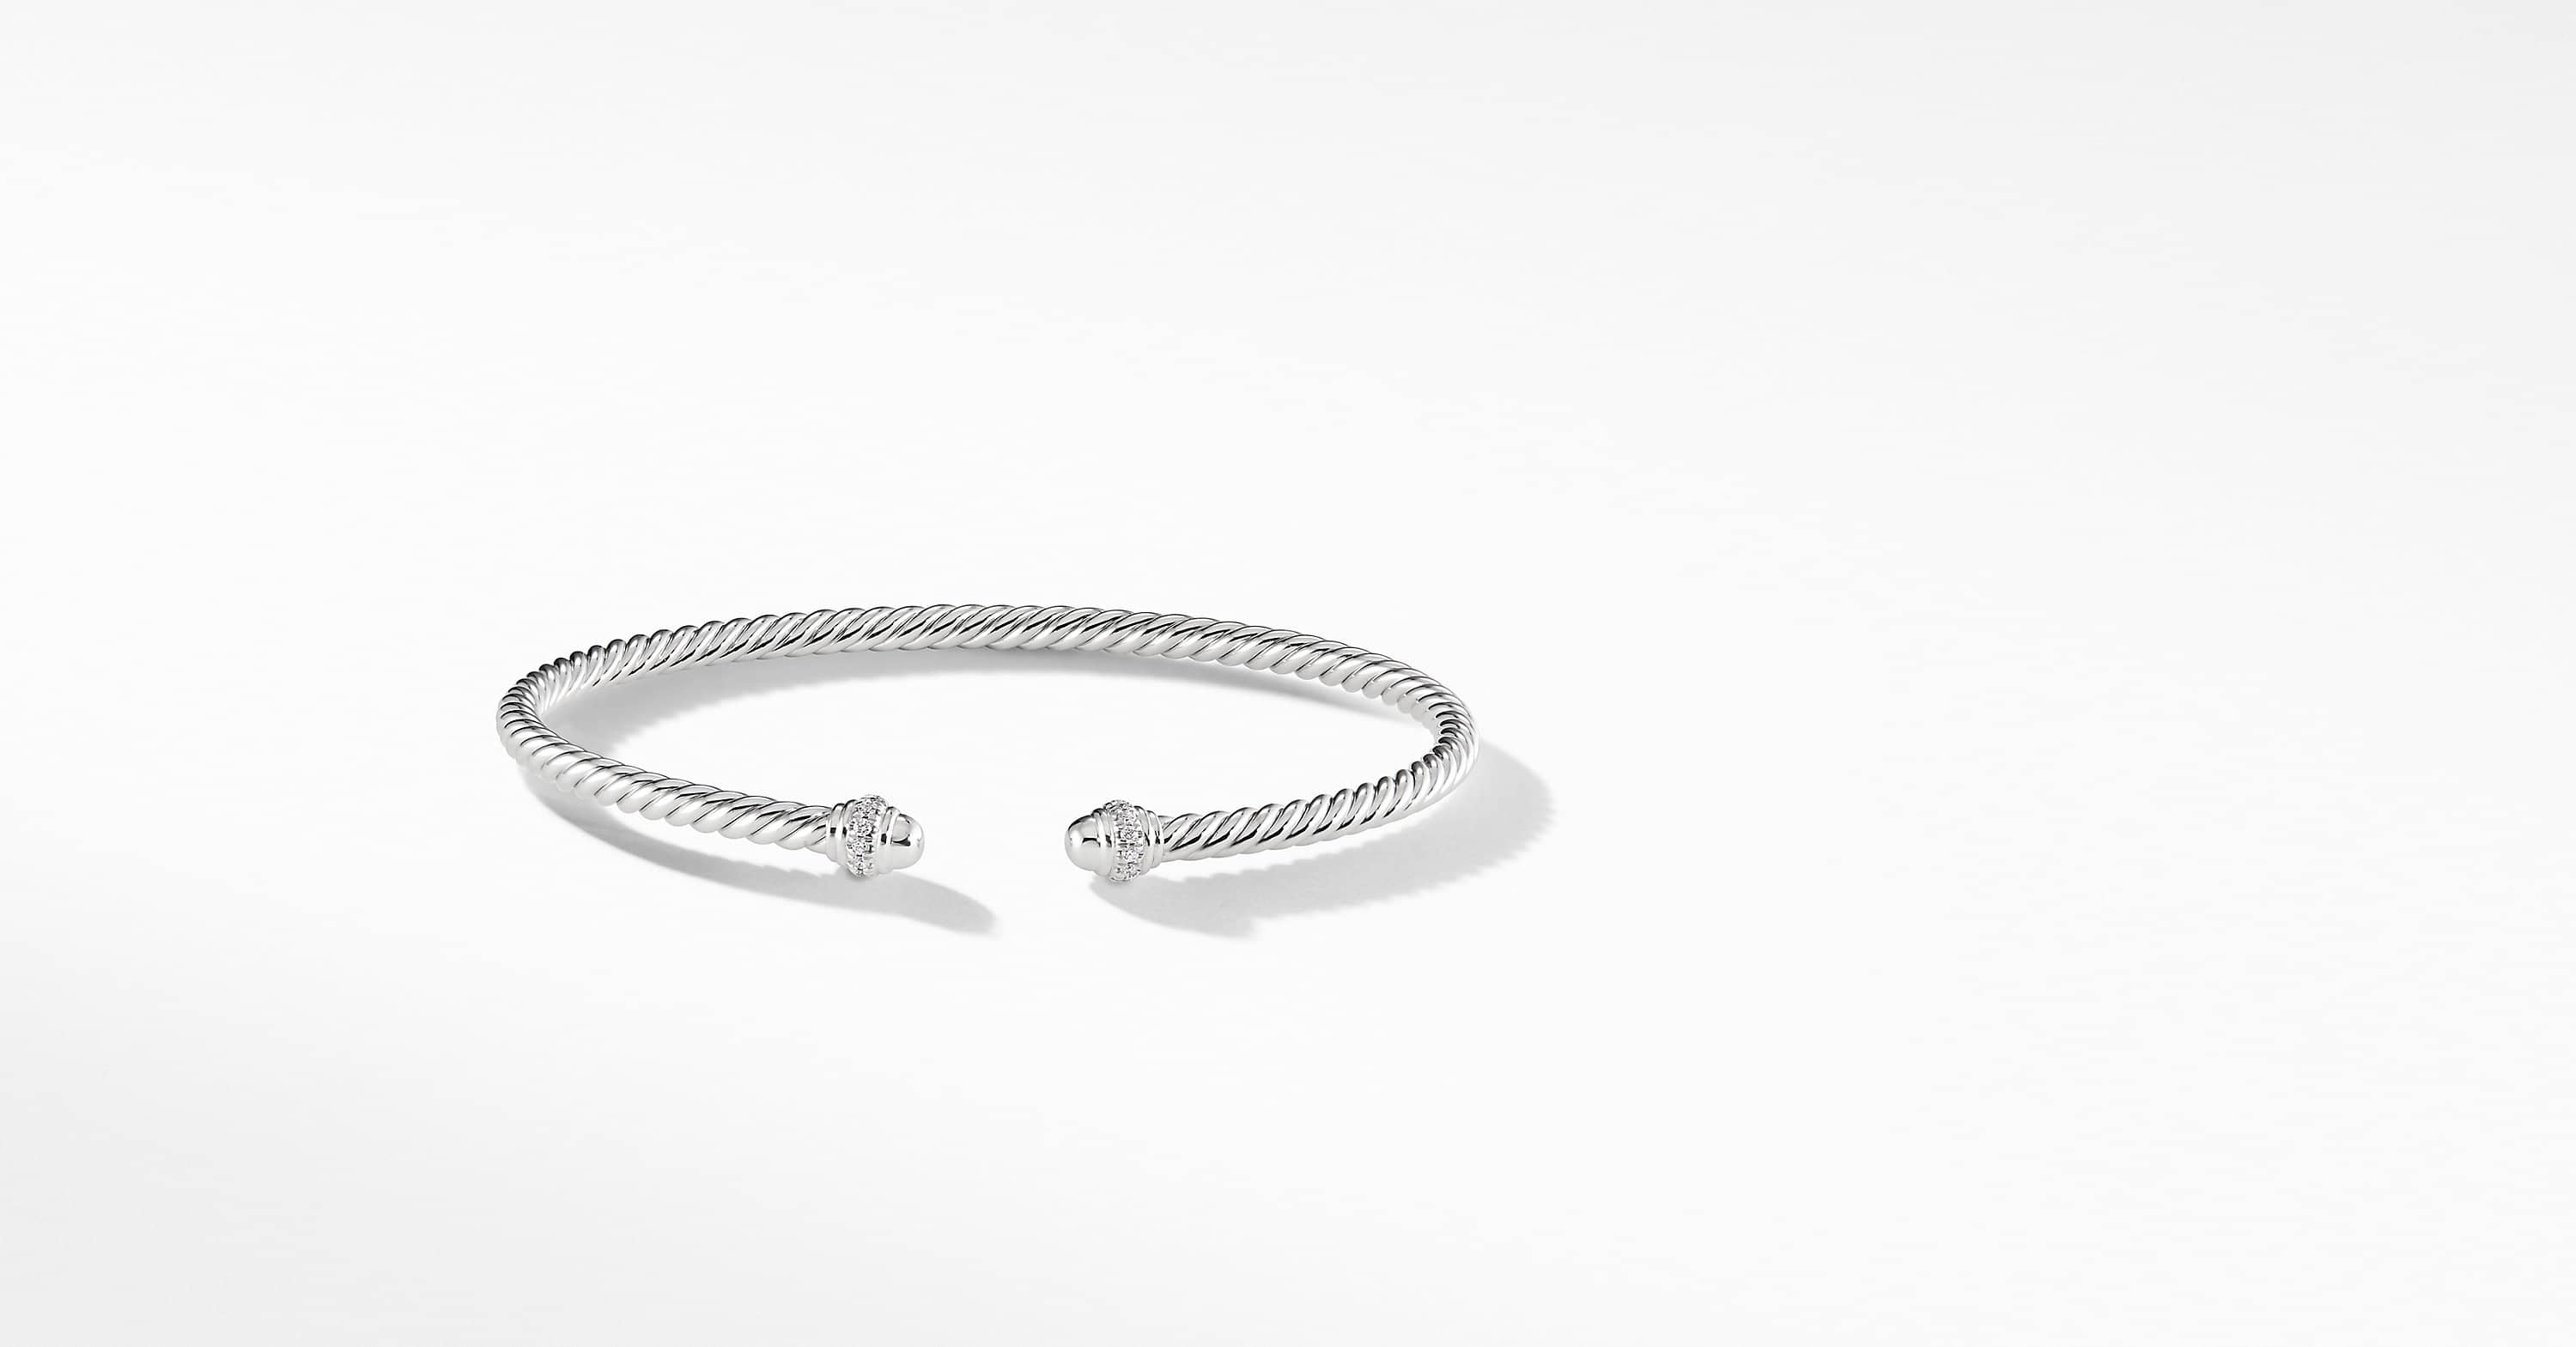 Bracelet « Cable » Spira en or blanc 18 carats et diamants, 3 mm